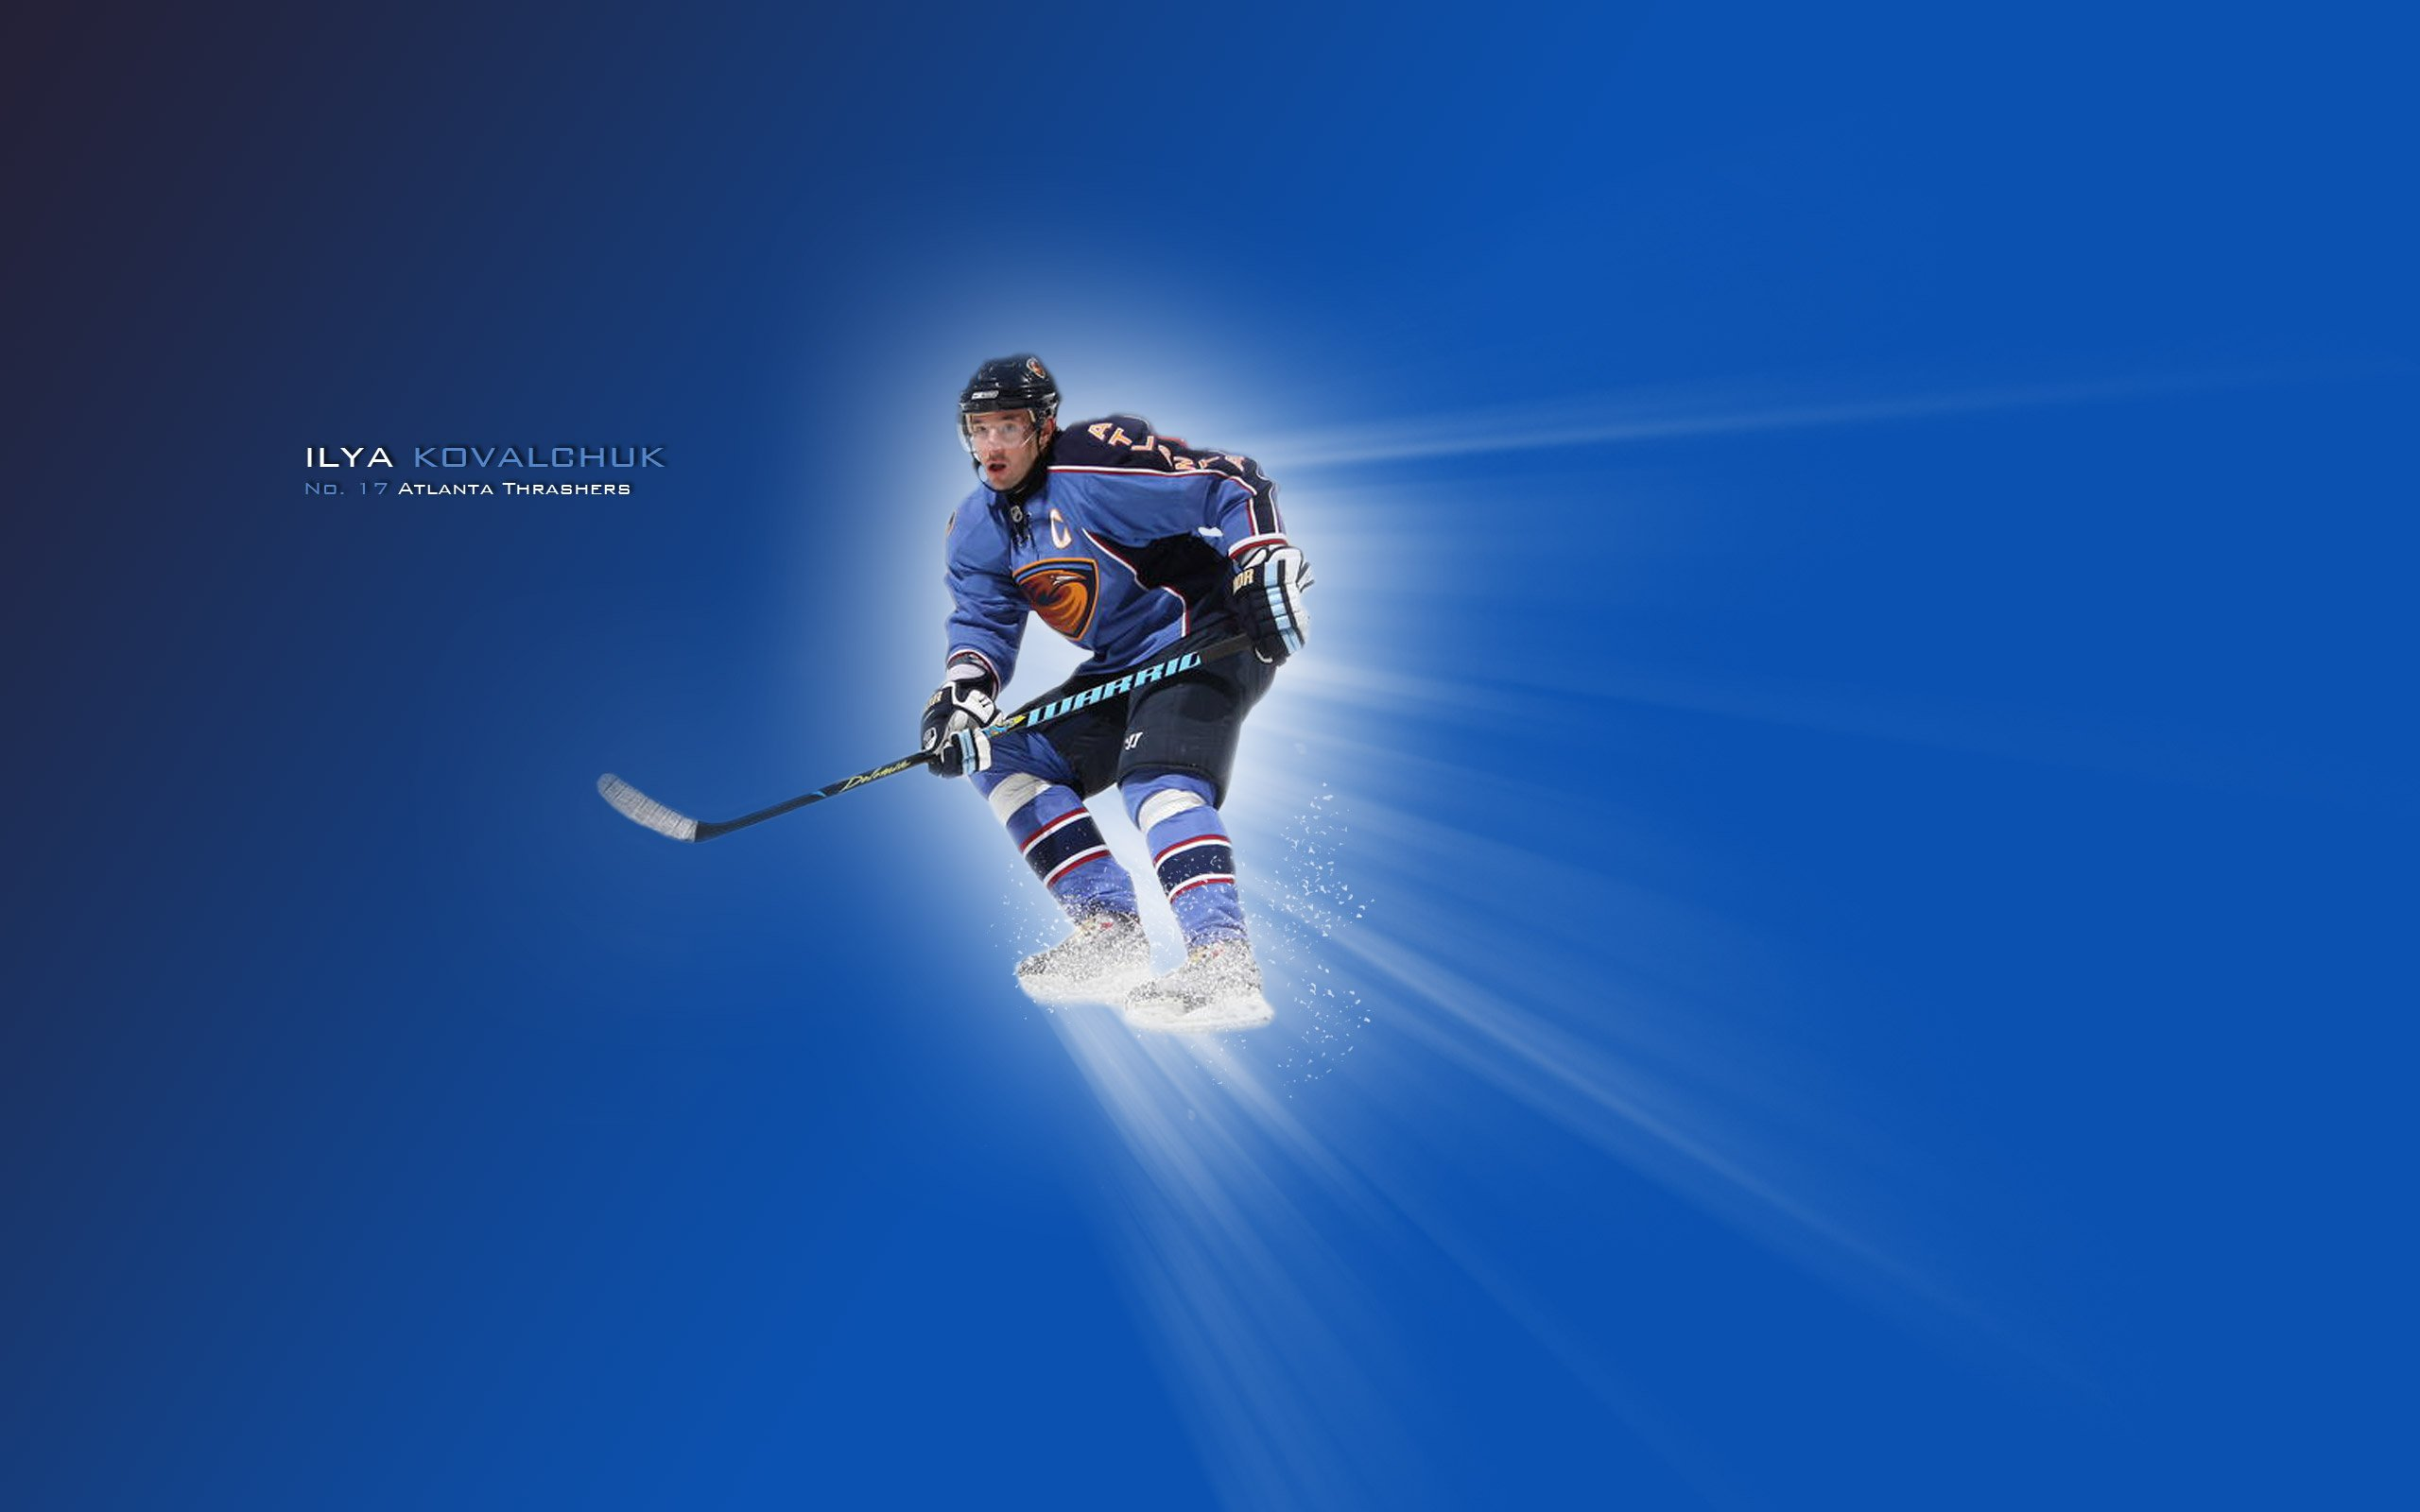 wallpaper Hockey photo wallpapers for desktop download 2560x1600